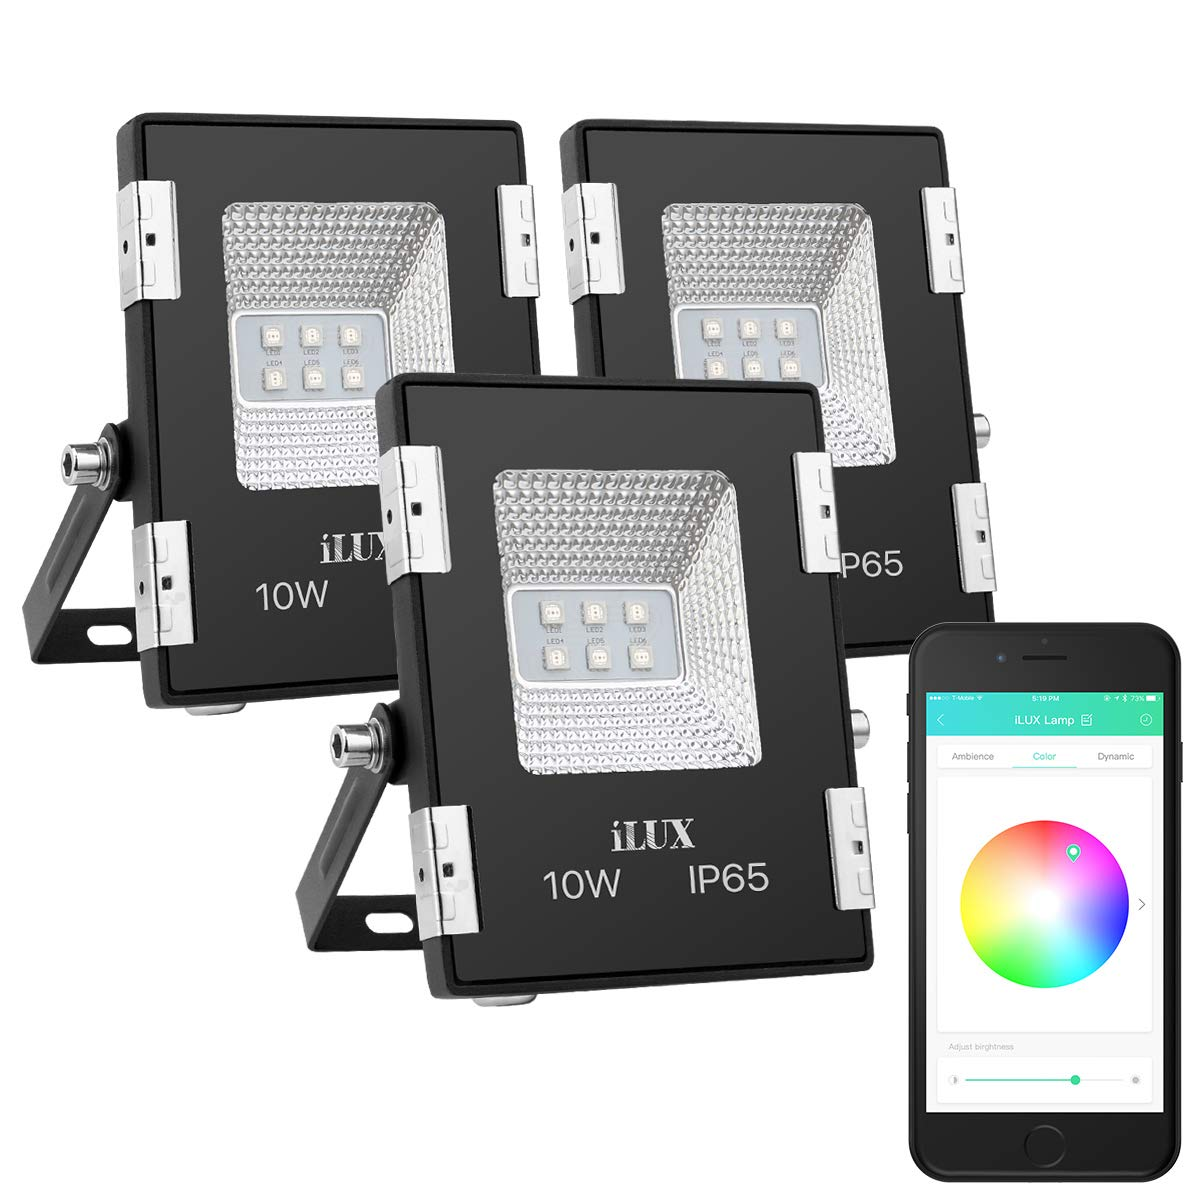 LE iLUX Smart LED Flood Light, 10W RGB Waterproof Dimmable LED Lights, Bluetooth Smart Phone or Remote Controlled, Works with Android and iOS, Pack of 3 Including 1 Remote Control